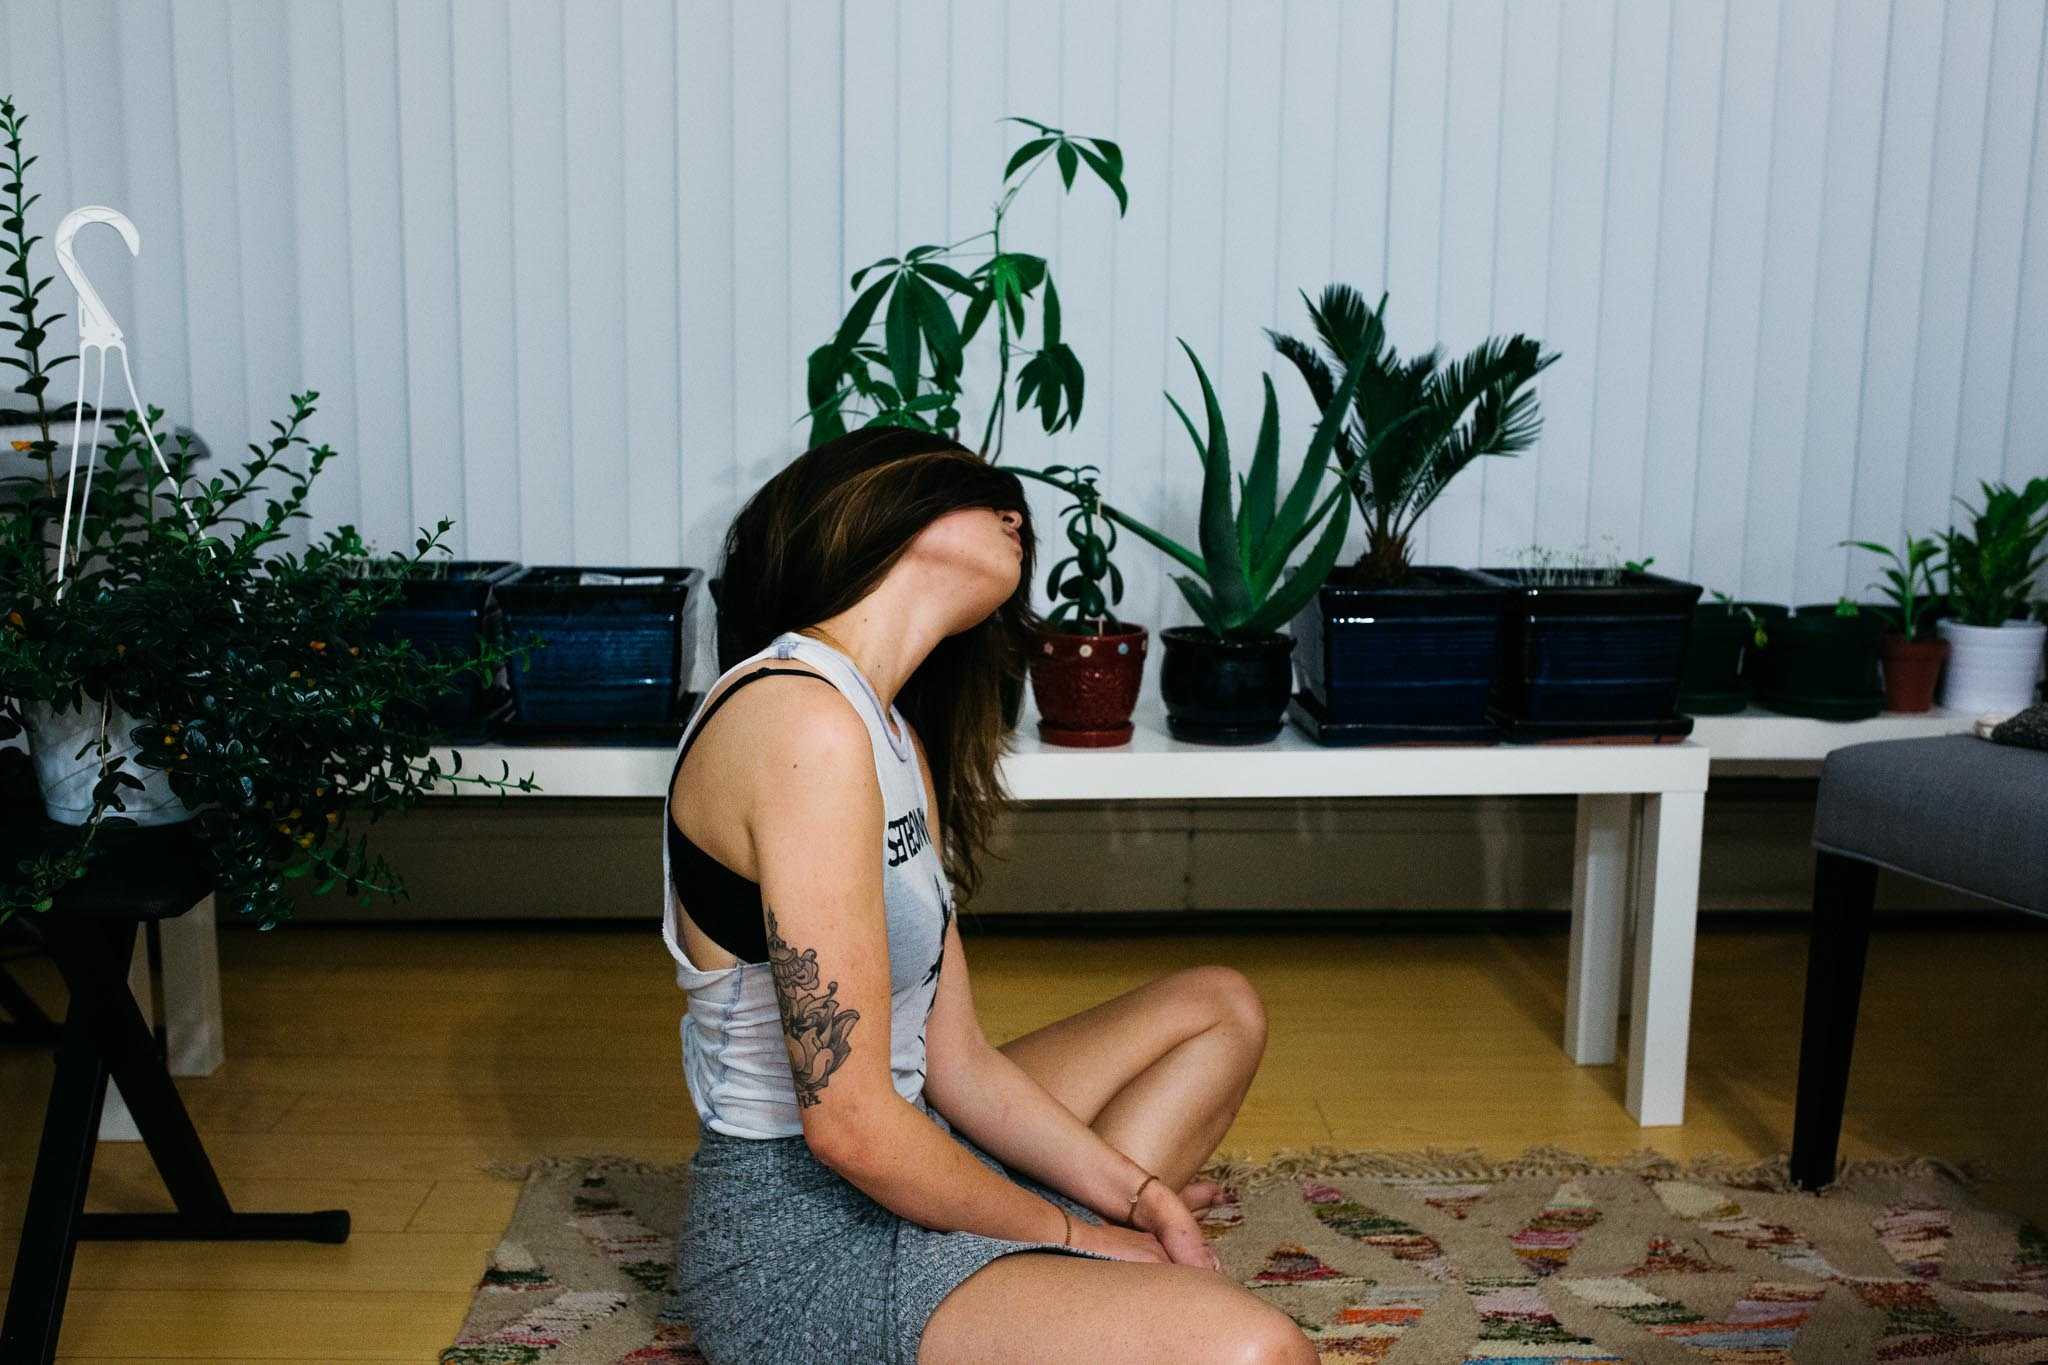 Its a great time to start yoga at home